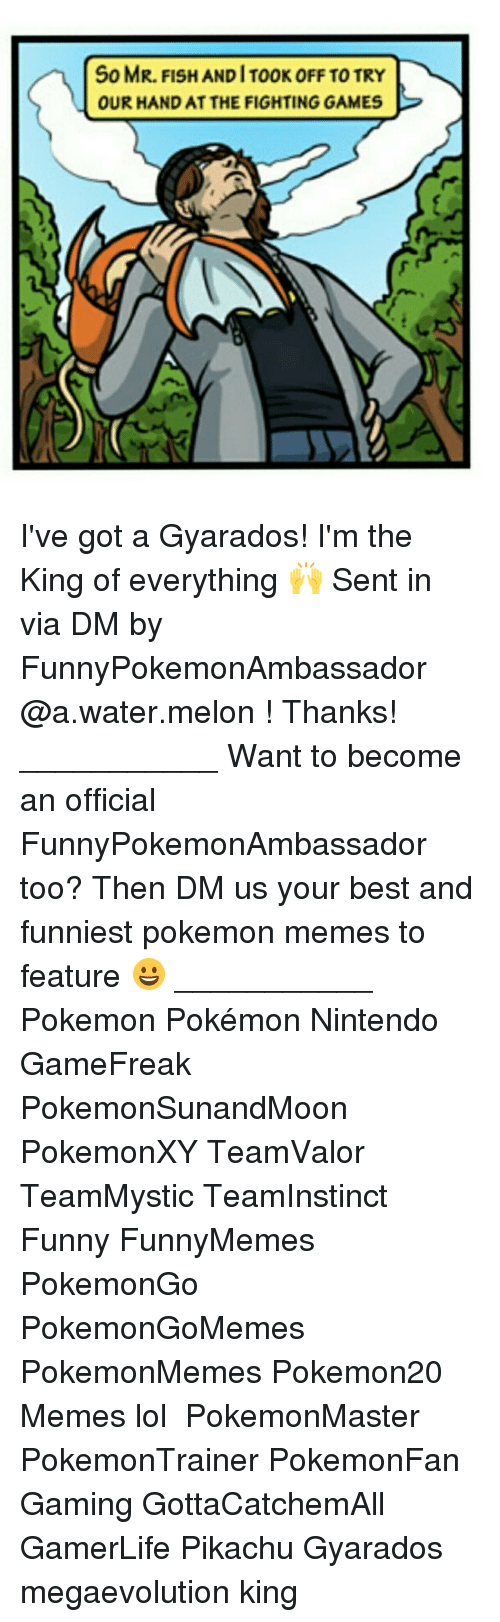 Melonism: So MR. FISH AND IT00K OFF TO TRY  OUR HAND AT THE FIGHTING GAMES I've got a Gyarados! I'm the King of everything 🙌 Sent in via DM by FunnyPokemonAmbassador @a.water.melon ! Thanks! ___________ Want to become an official FunnyPokemonAmbassador too? Then DM us your best and funniest pokemon memes to feature 😀 ___________ Pokemon Pokémon Nintendo GameFreak PokemonSunandMoon PokemonXY TeamValor TeamMystic TeamInstinct Funny FunnyMemes PokemonGo PokemonGoMemes PokemonMemes Pokemon20 Memes lol ポケットモンスター PokemonMaster PokemonTrainer PokemonFan Gaming GottaCatchemAll GamerLife Pikachu Gyarados megaevolution king